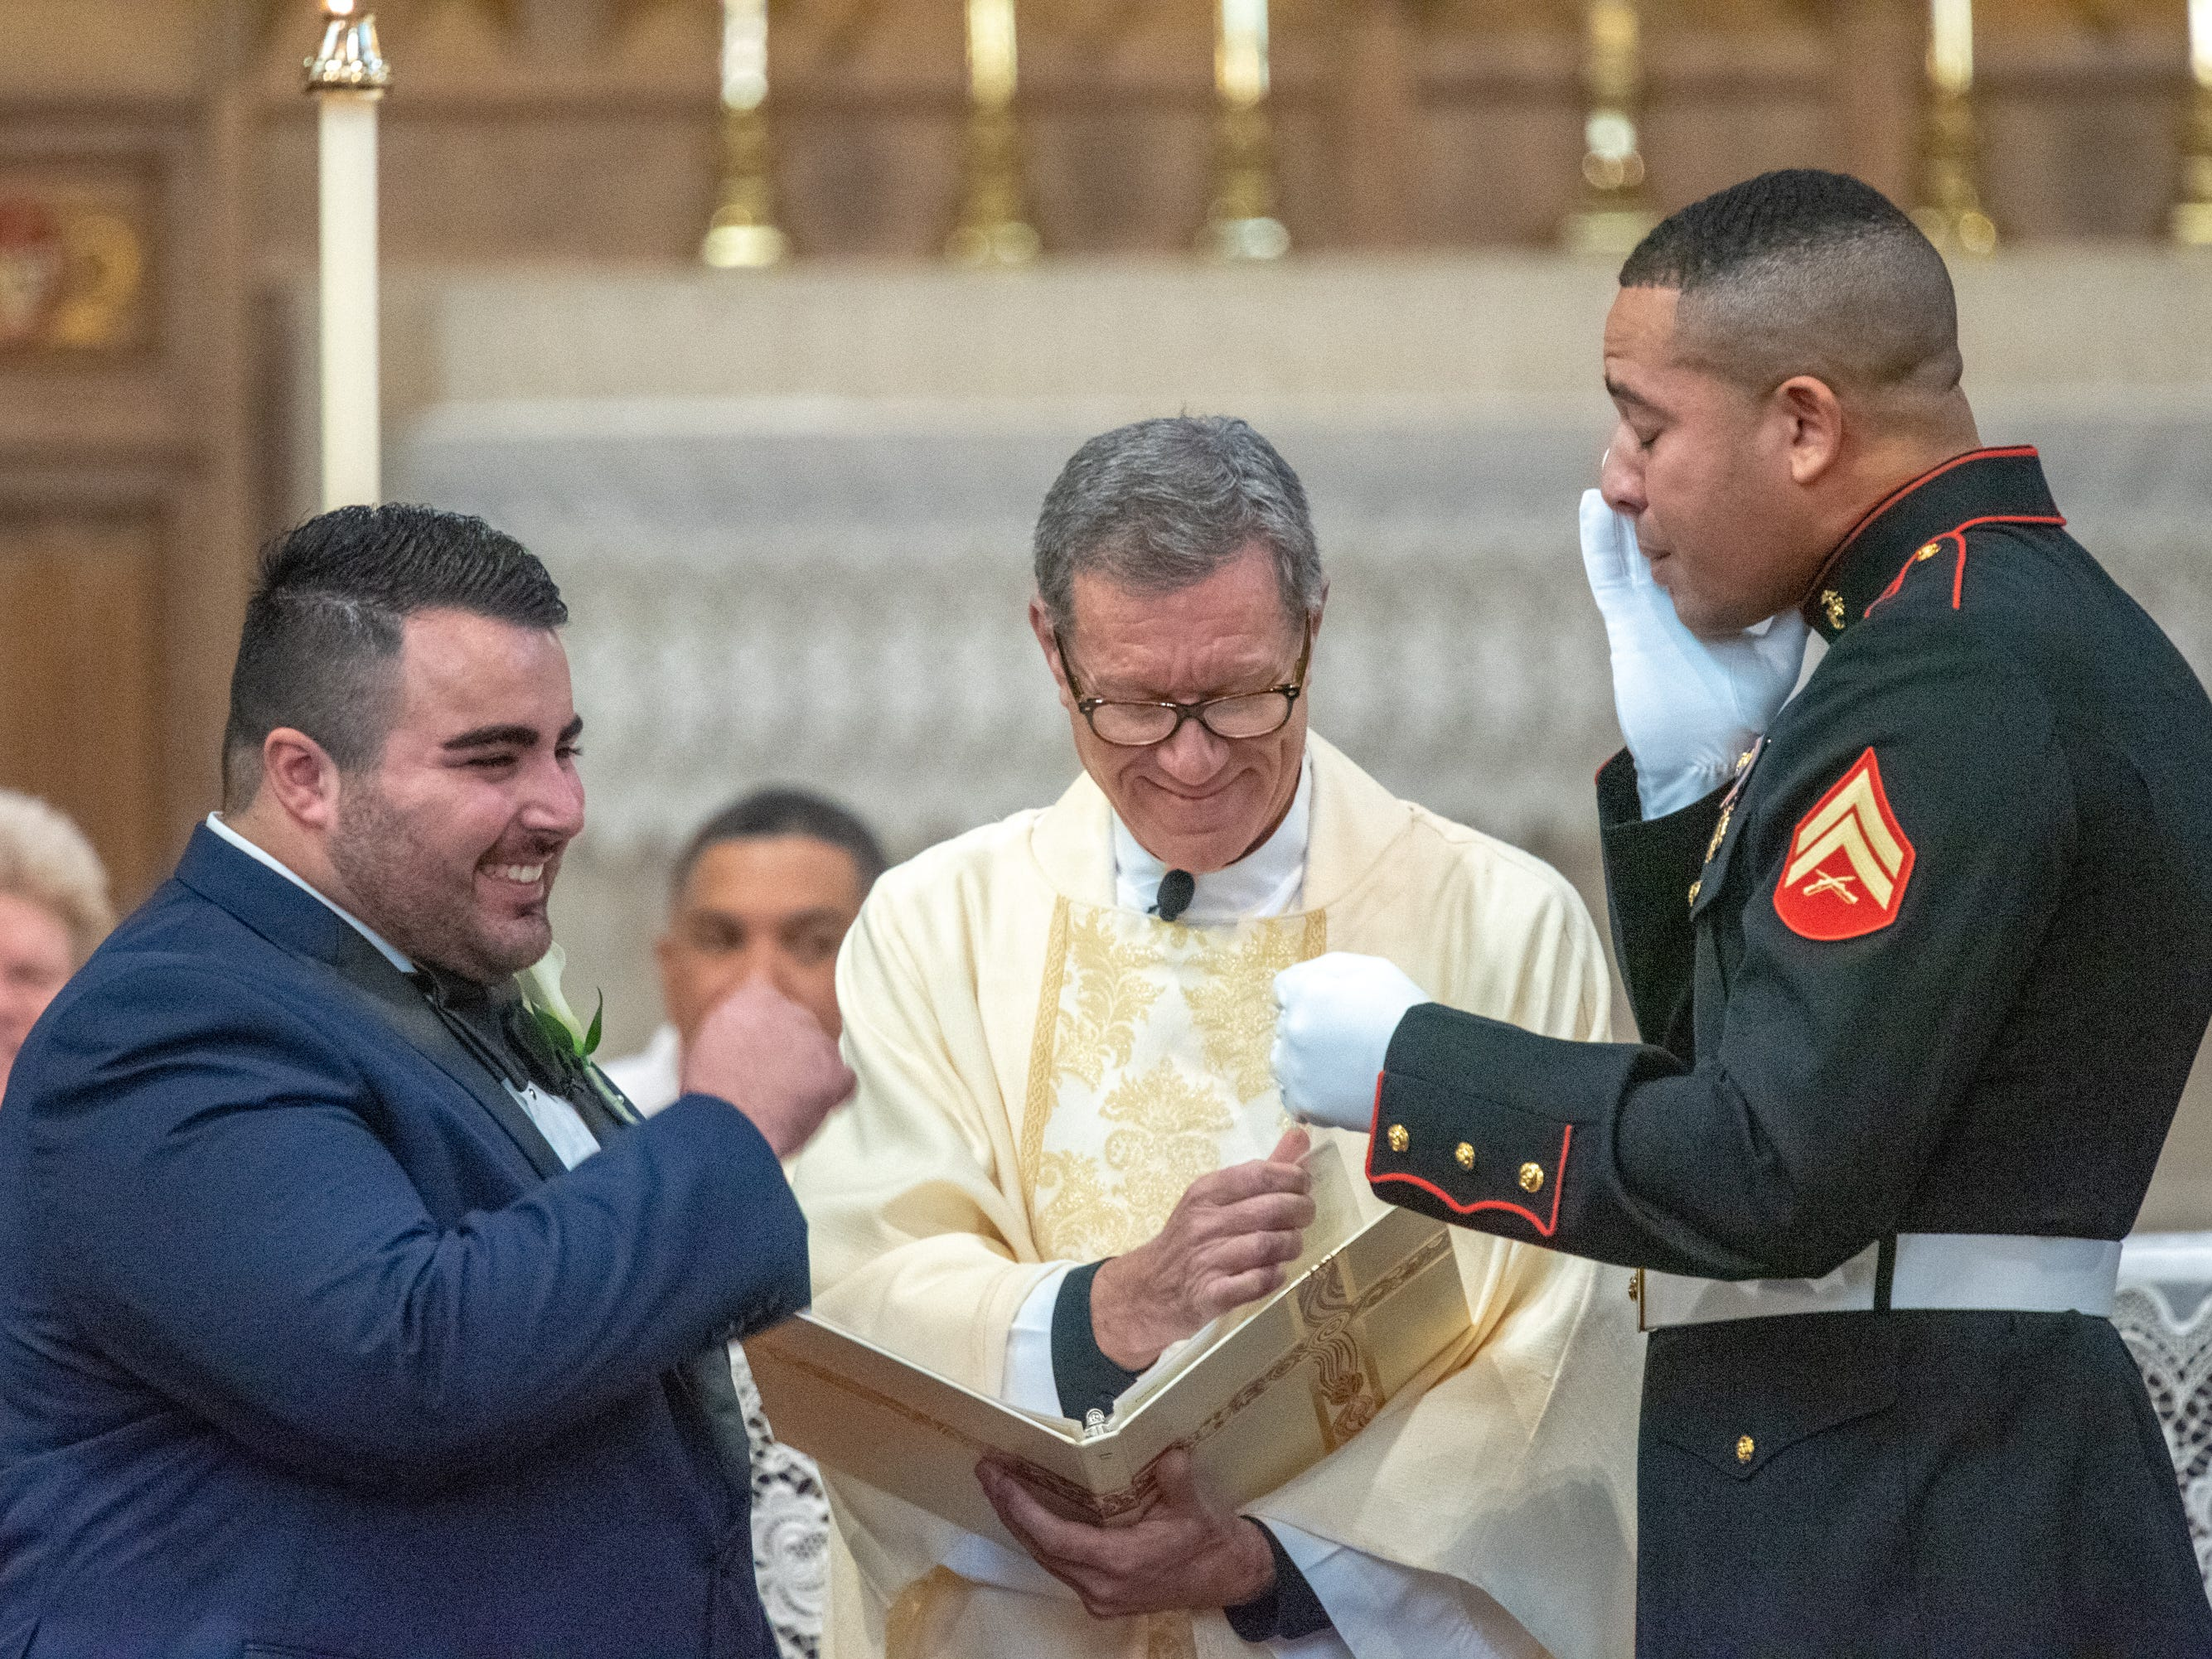 Christian Fuscarino, (left) Executive Director of Garden State Equality, and U.S. Marine Corporal Aaron Williams were married at Trinity Church in Asbury Park on Sunday, November 11, 2018.